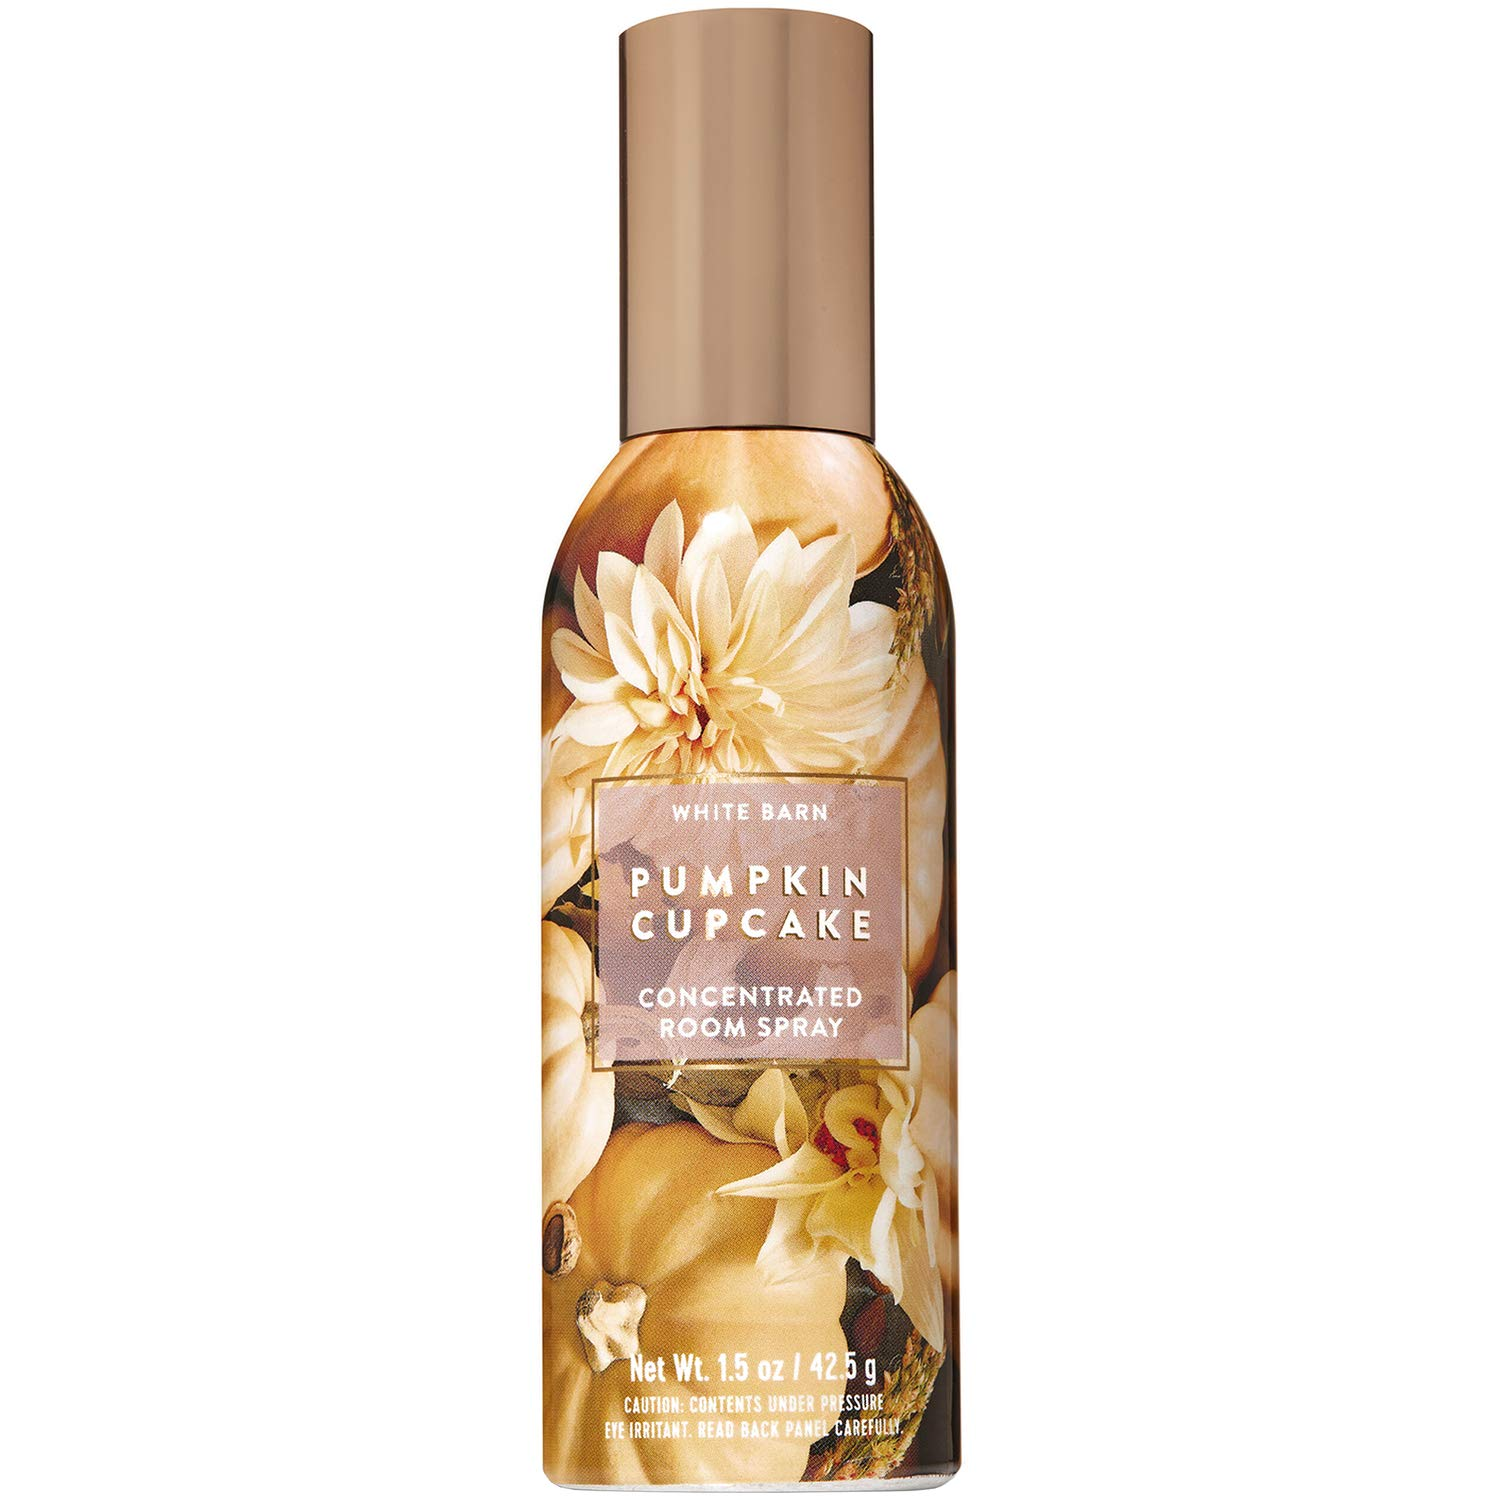 Bath and Body Works Pumpkin Cupcake Concentrated Room Spray 1.5 Ounce (2019 Edition, White Barn Label)